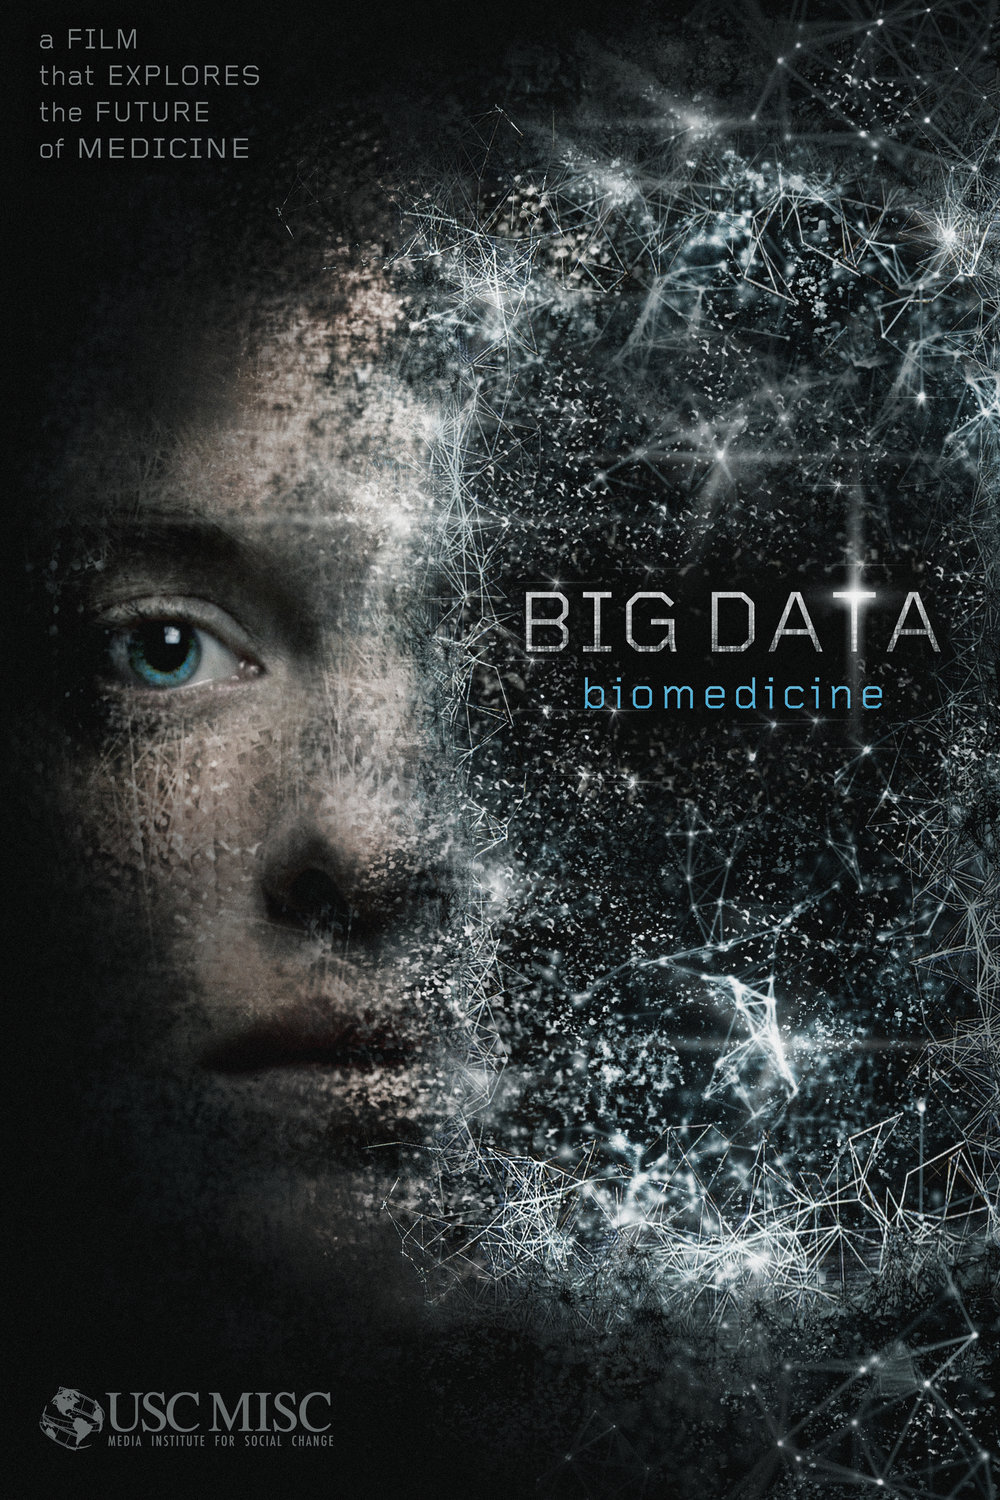 Big Data biomedicine